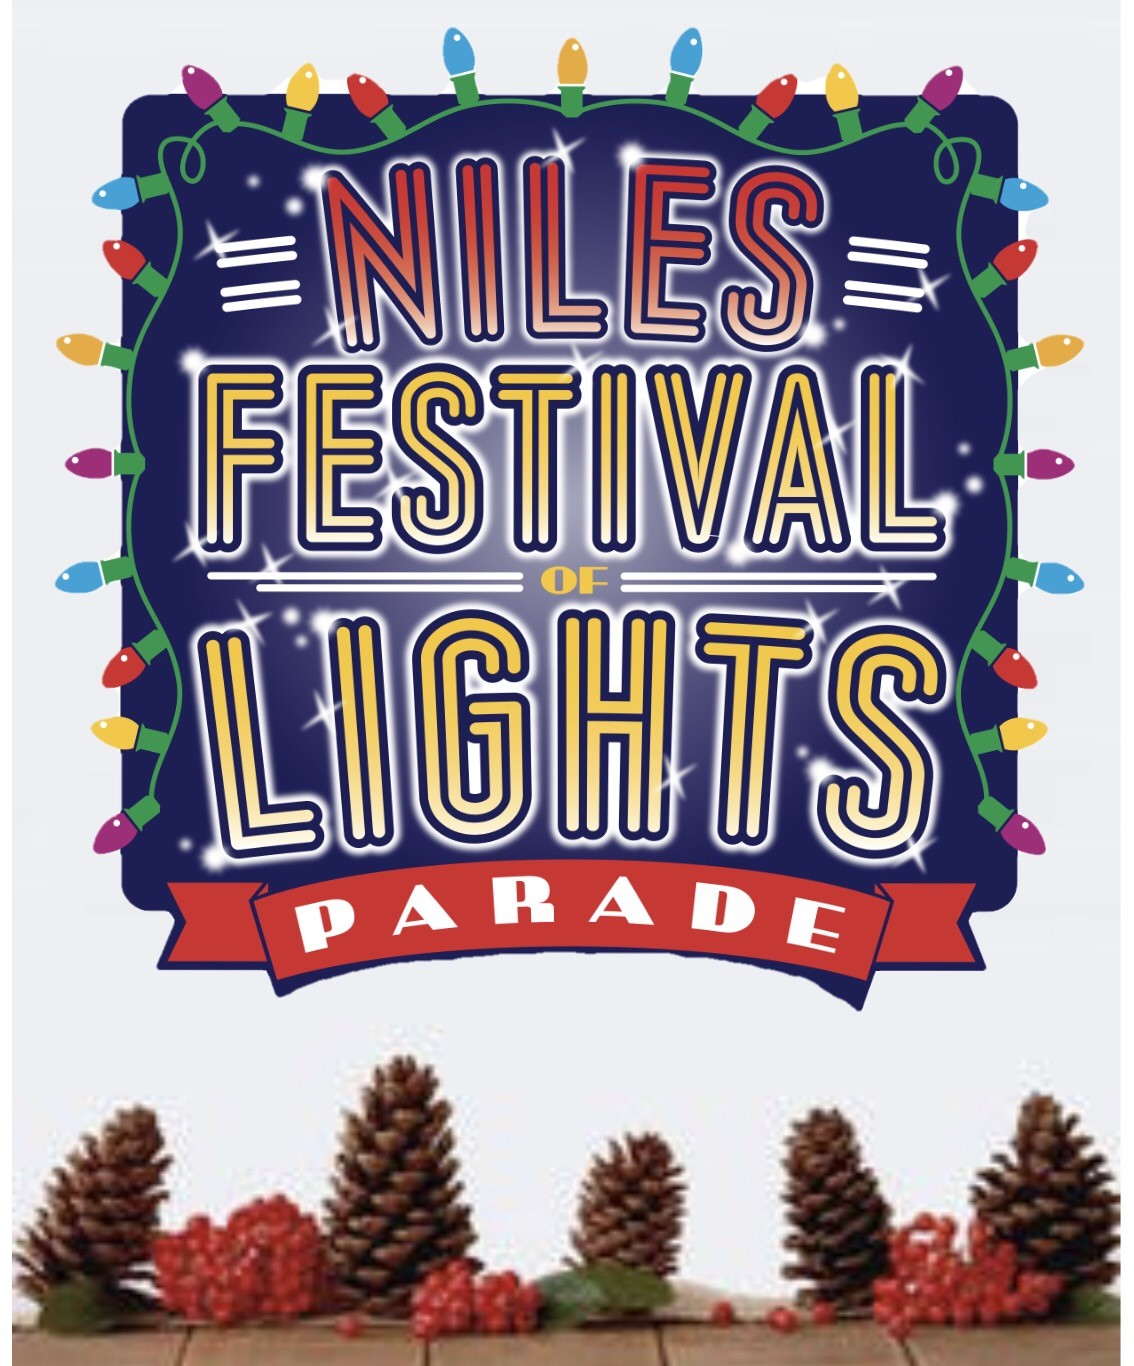 Niles Festival of Lights Parade